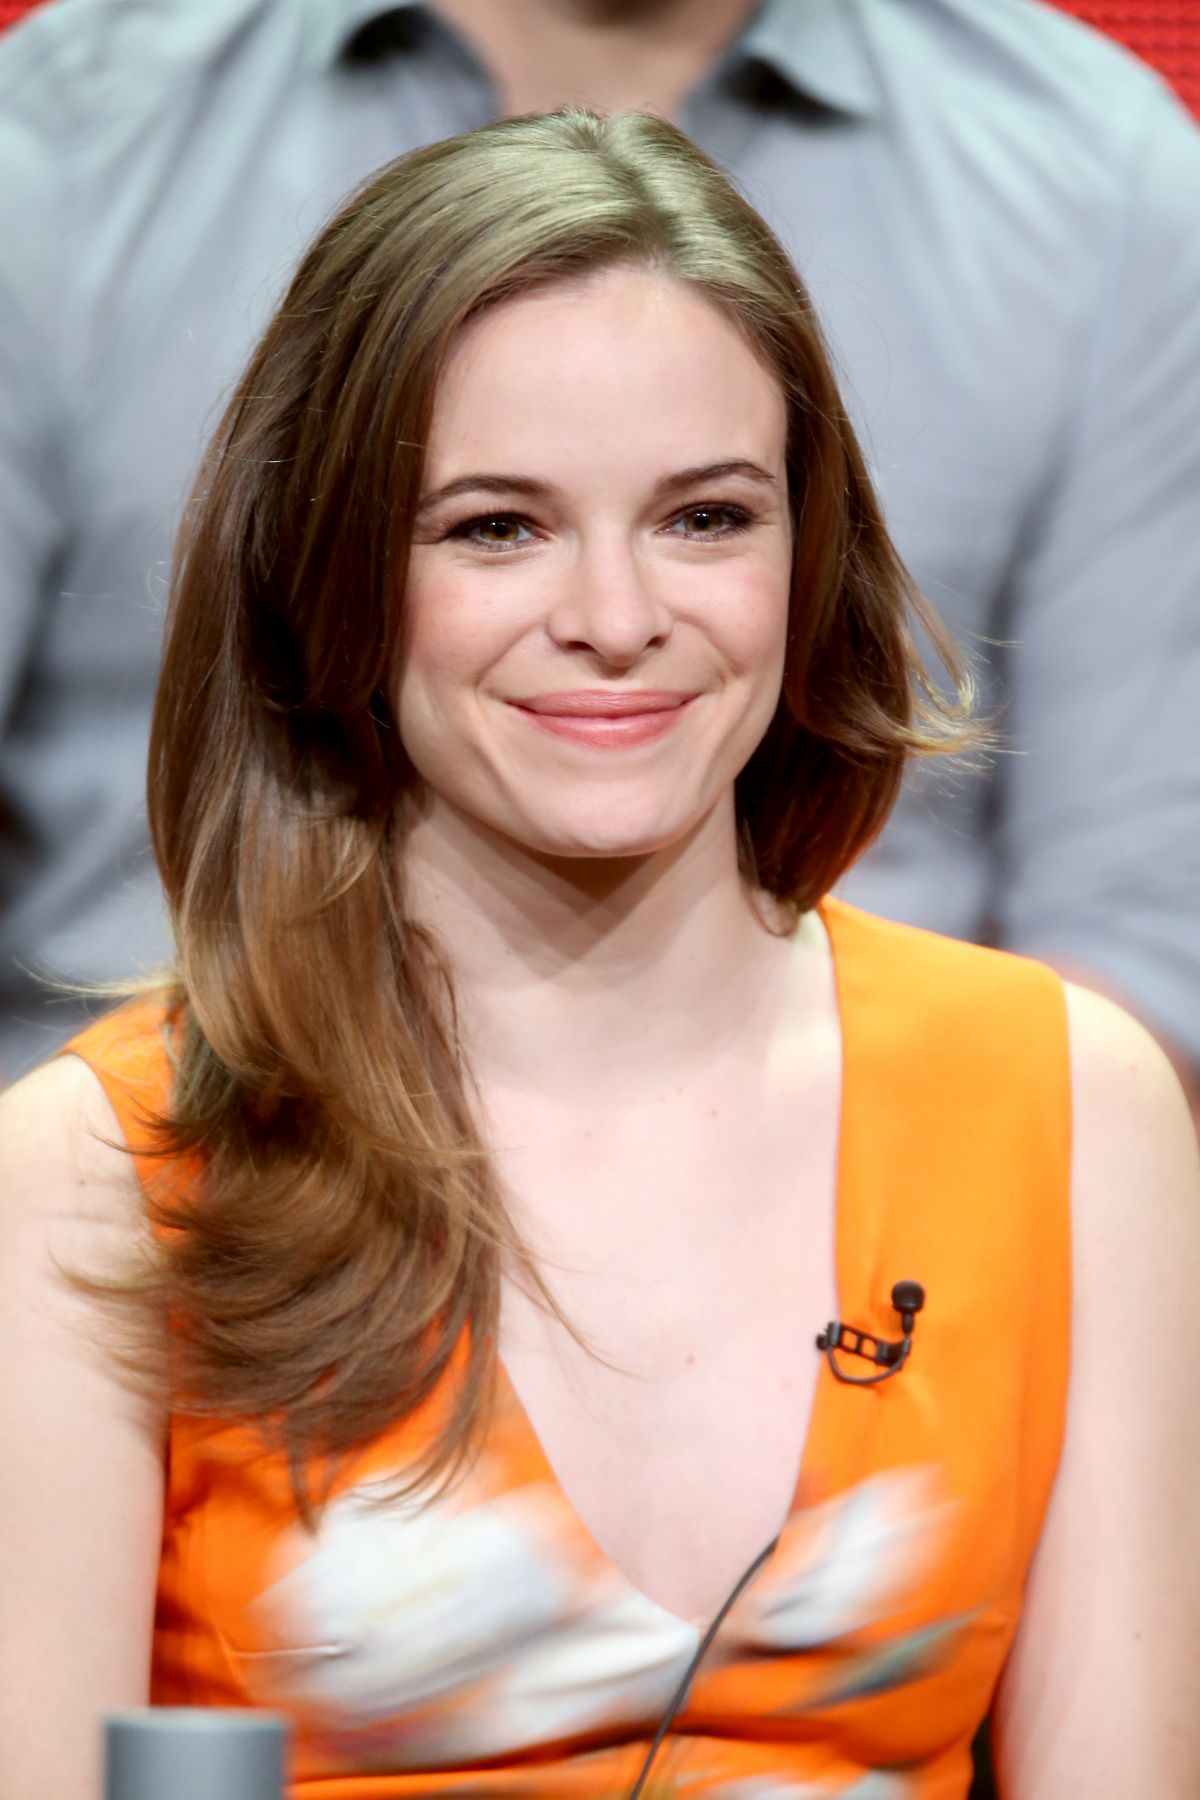 For Danielle panabaker in bikini touch Otherwise